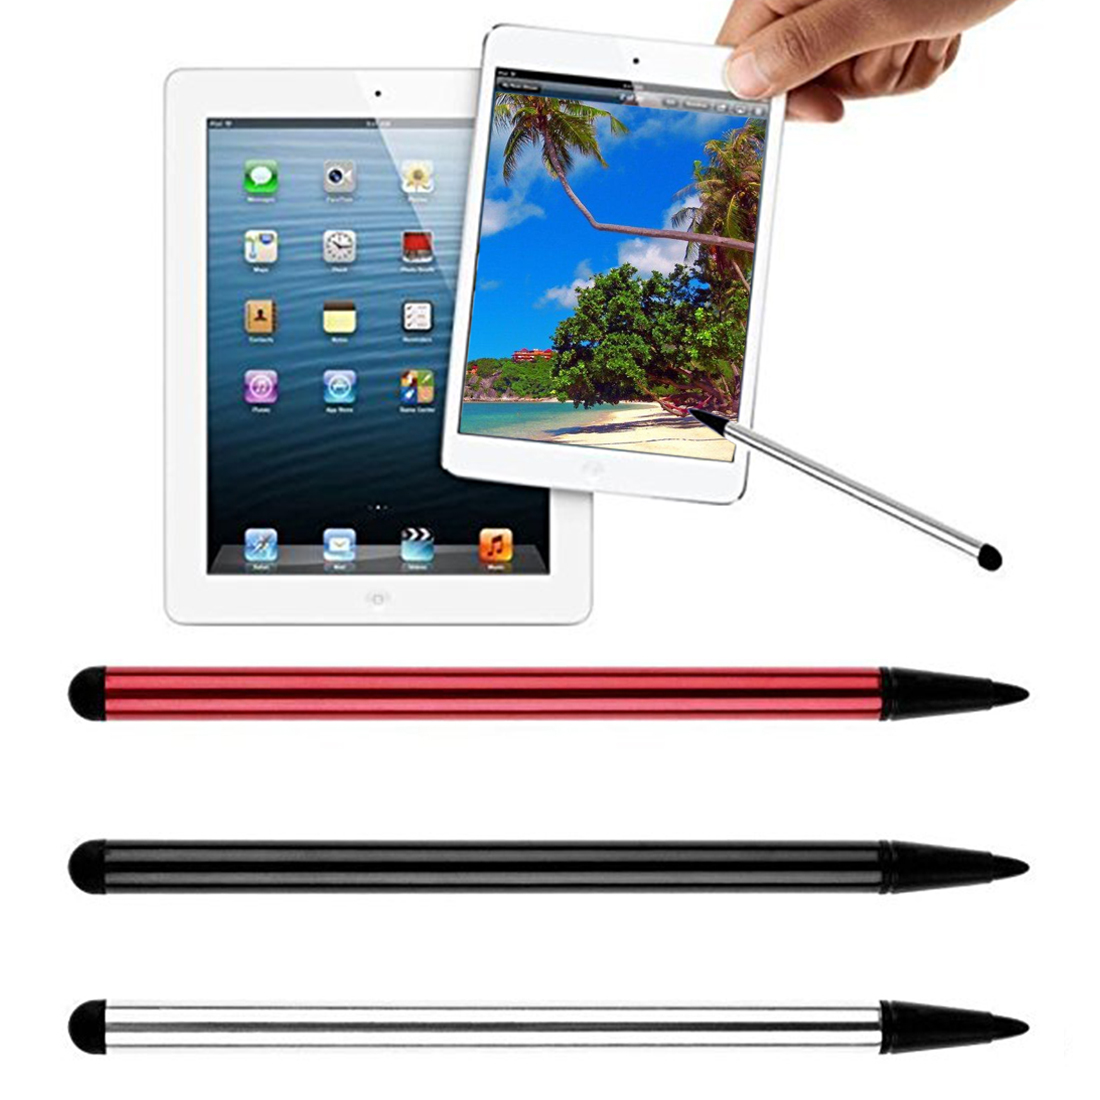 1PCS Capacitive Pen Touch Screen Stylus Pencil for iPhone iPad Tablet PC Samsung